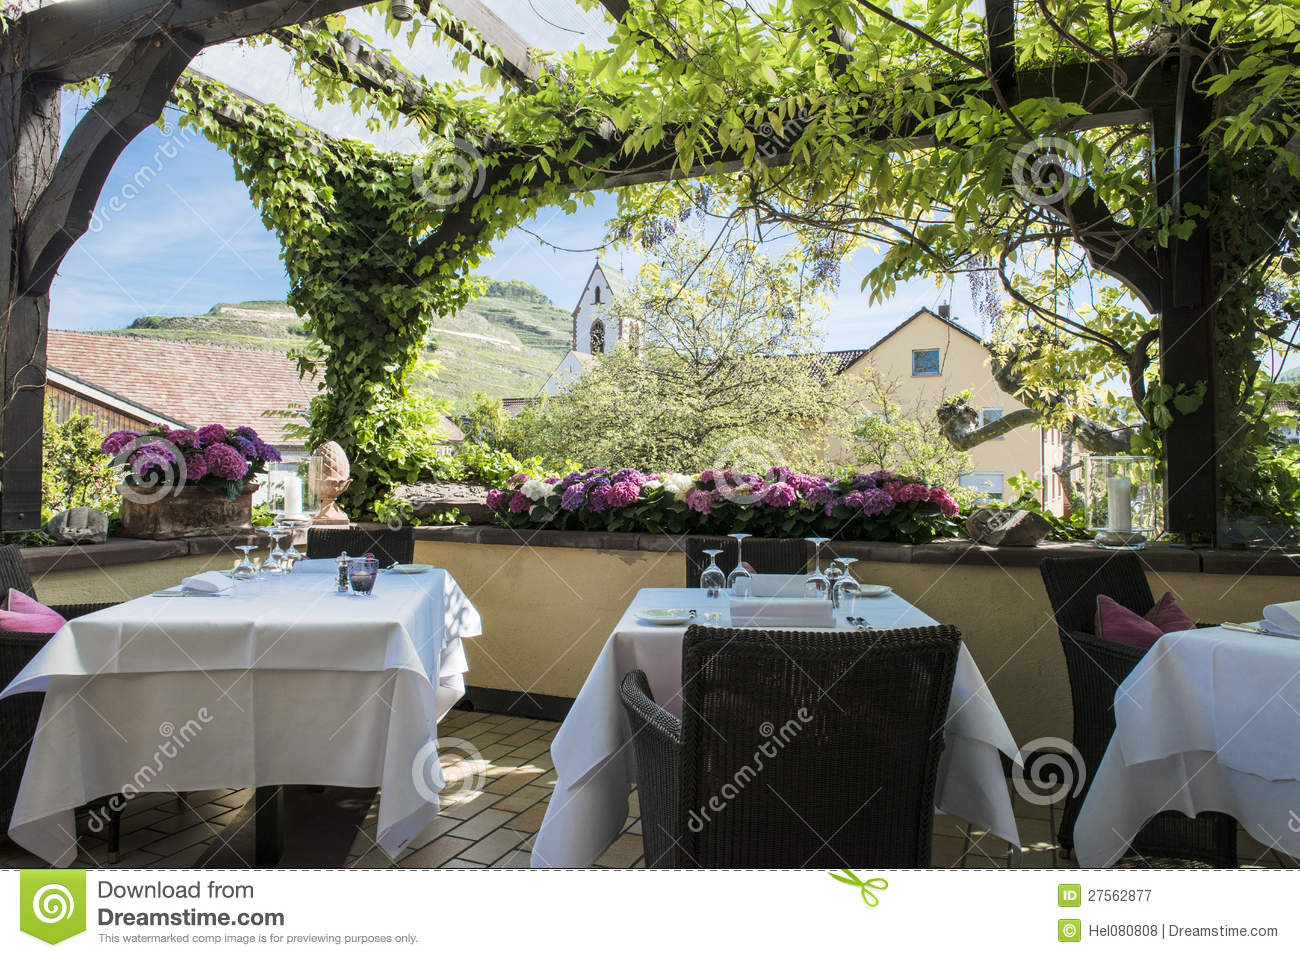 Patio with pergola royalty free stock photography image 27562877 - Smeedijzeren pergolas voor terras ...